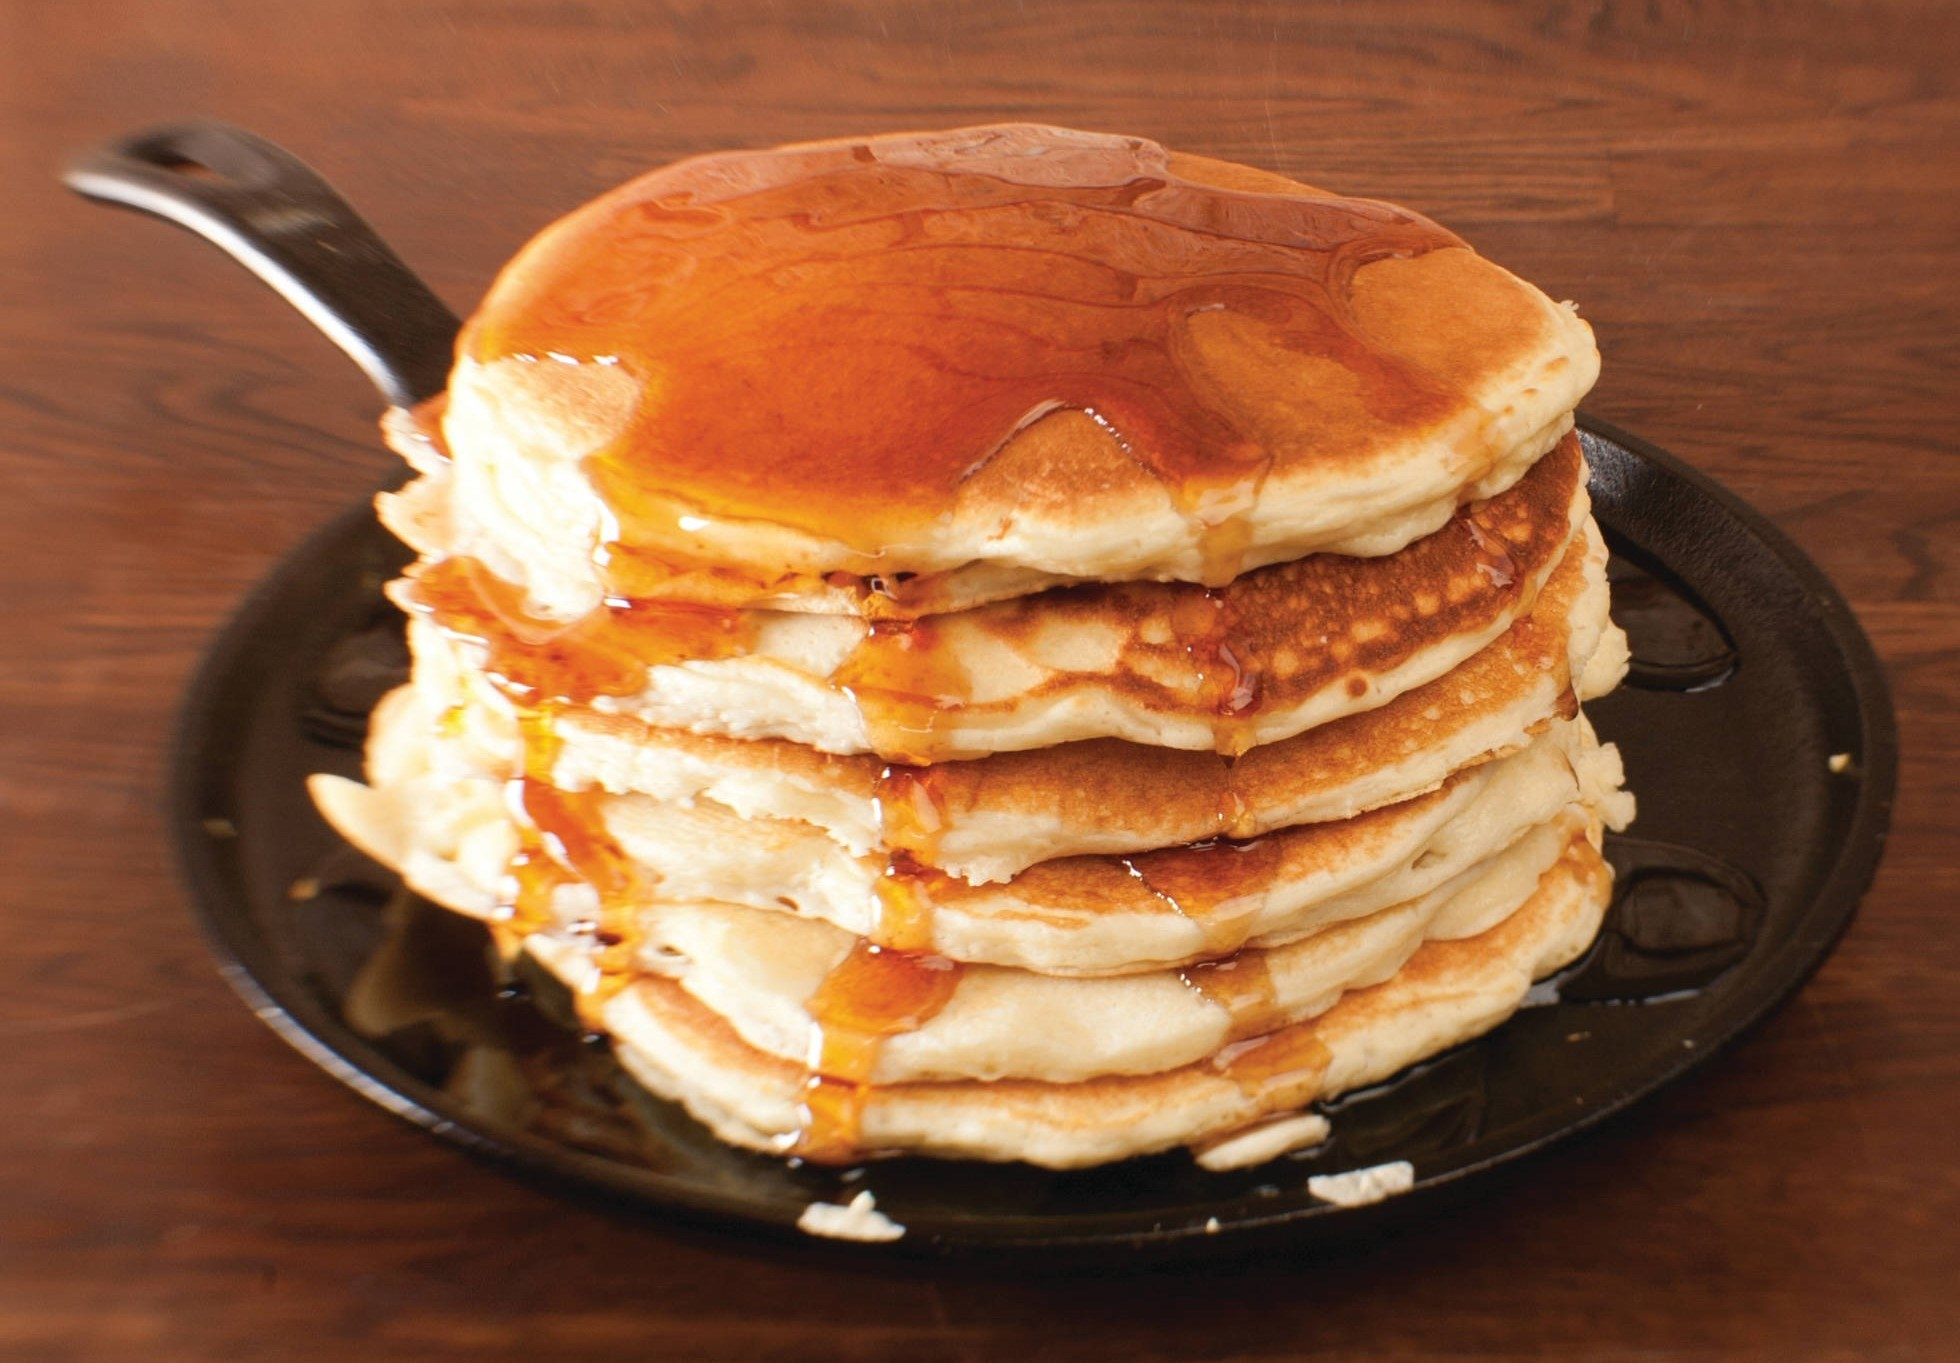 The griddle, with pancakes on it